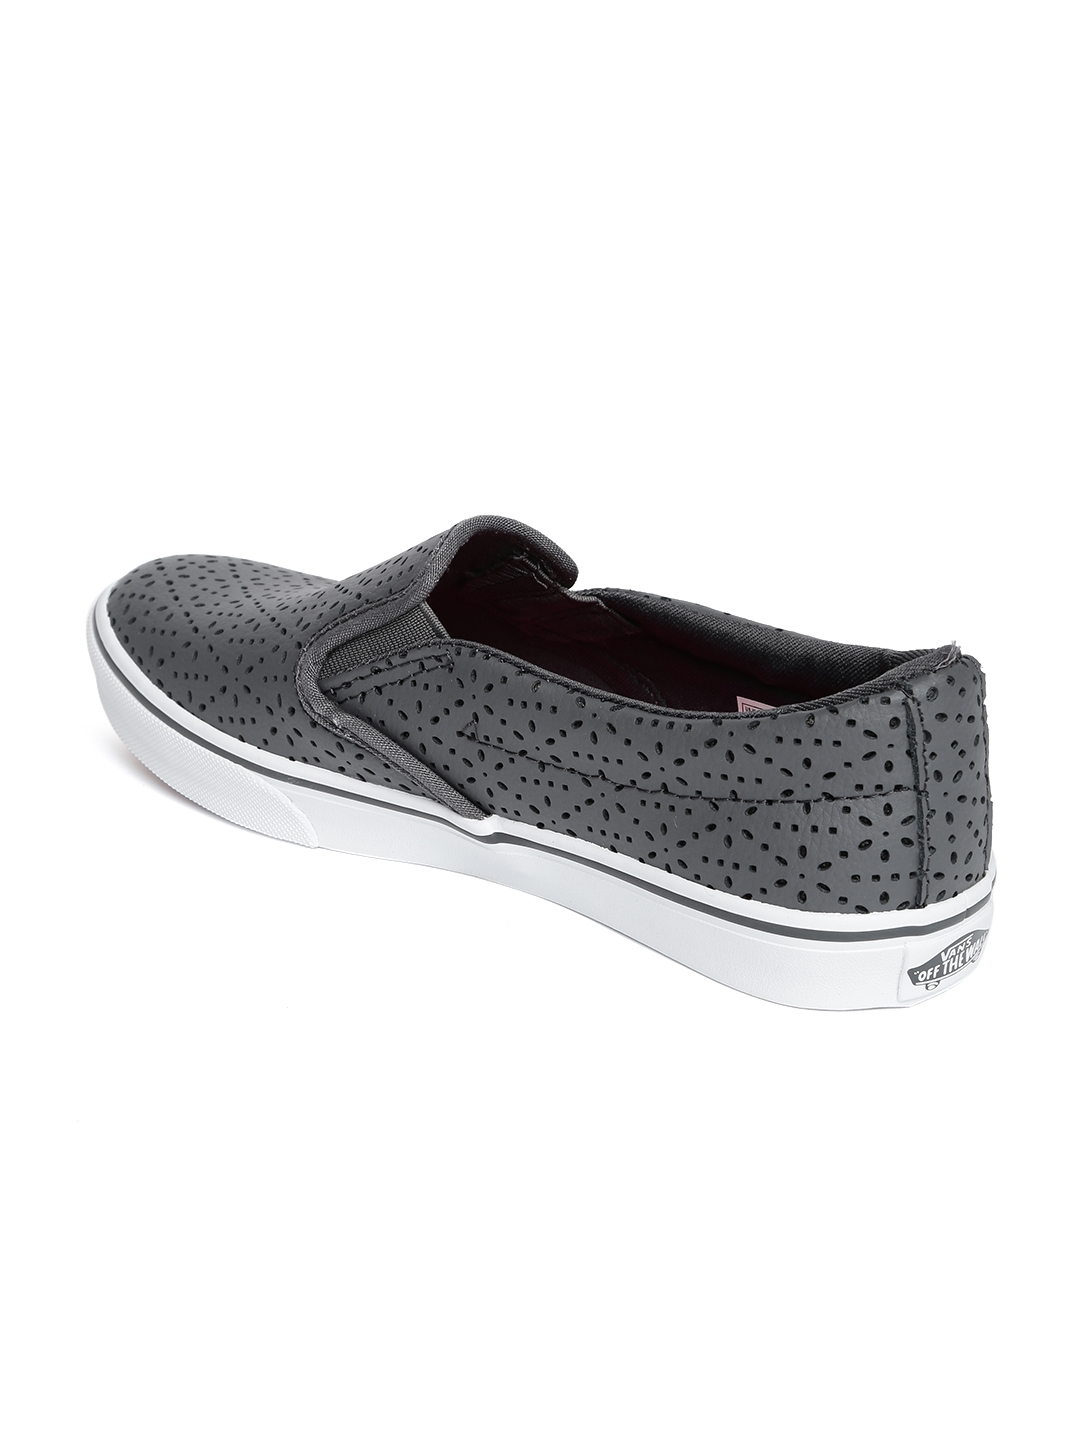 Buy Vans Women Grey Leather Asher Slip On Sneakers - Casual Shoes ... 29b170335